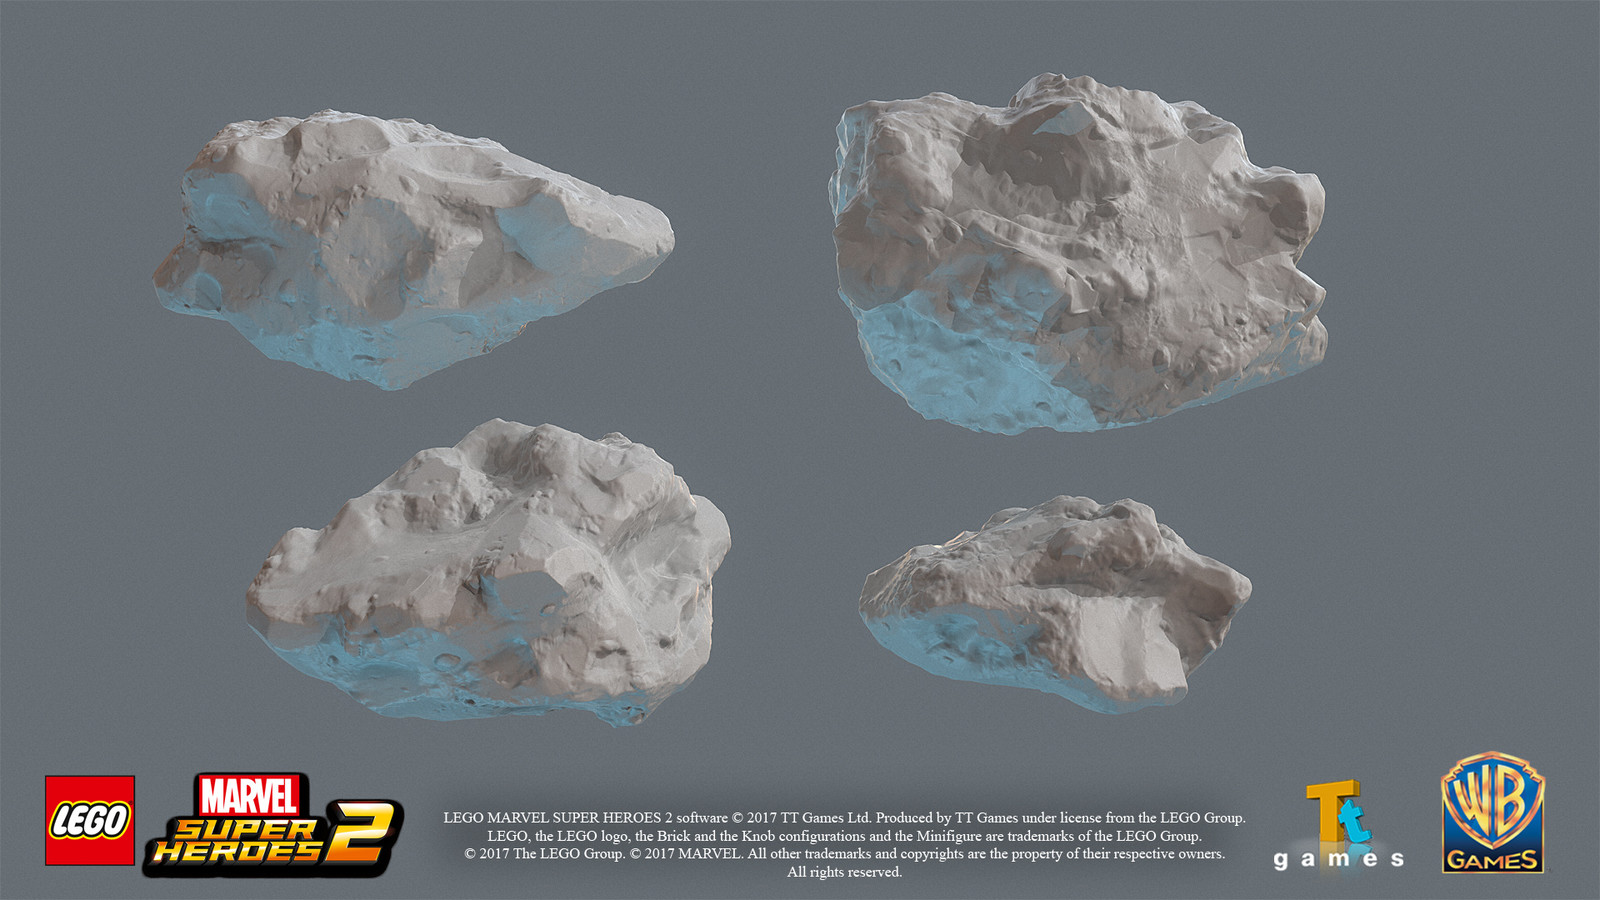 High res rock sculpts